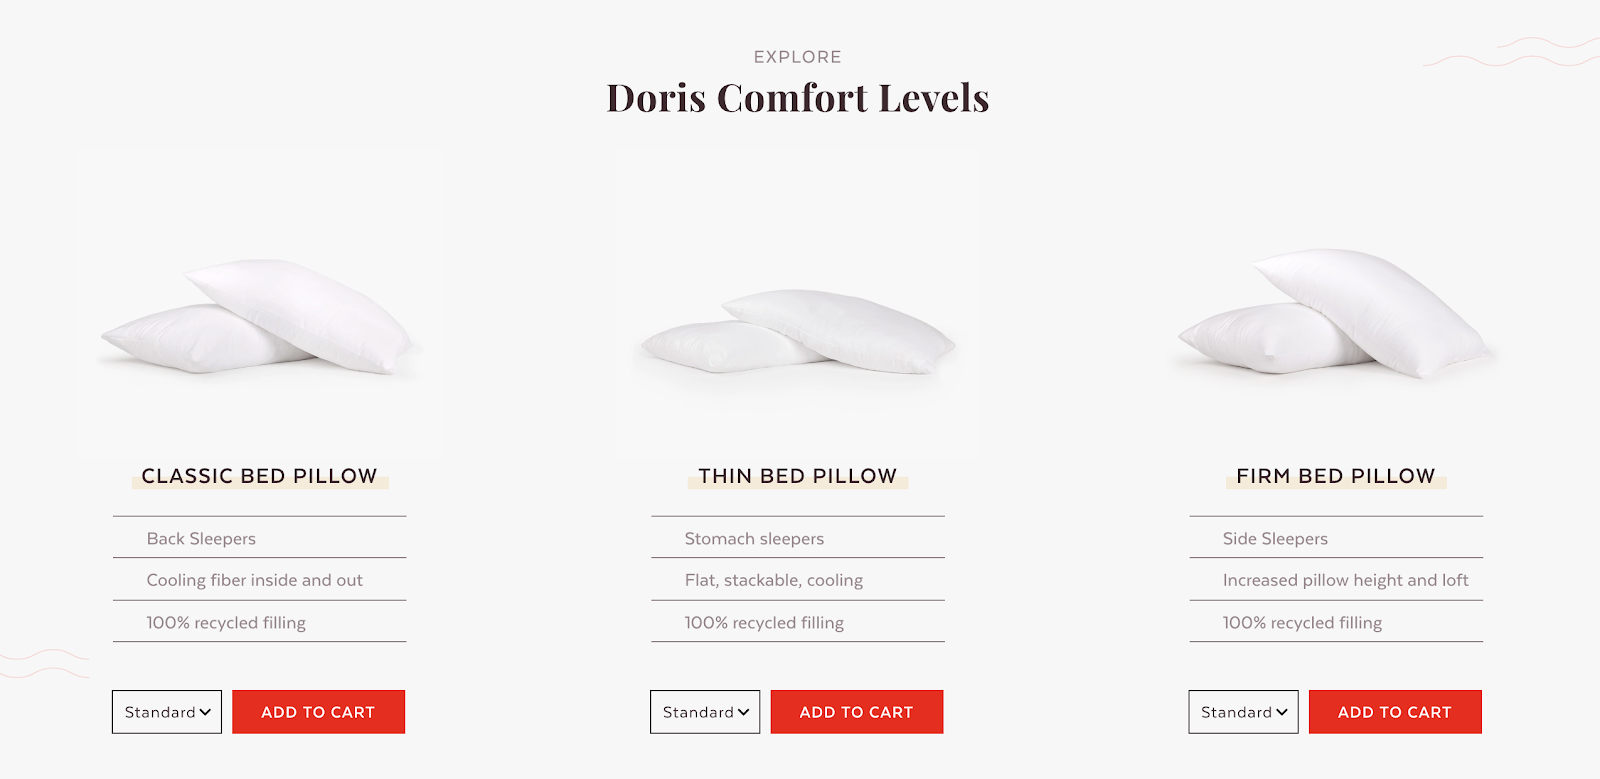 Pillow product choices